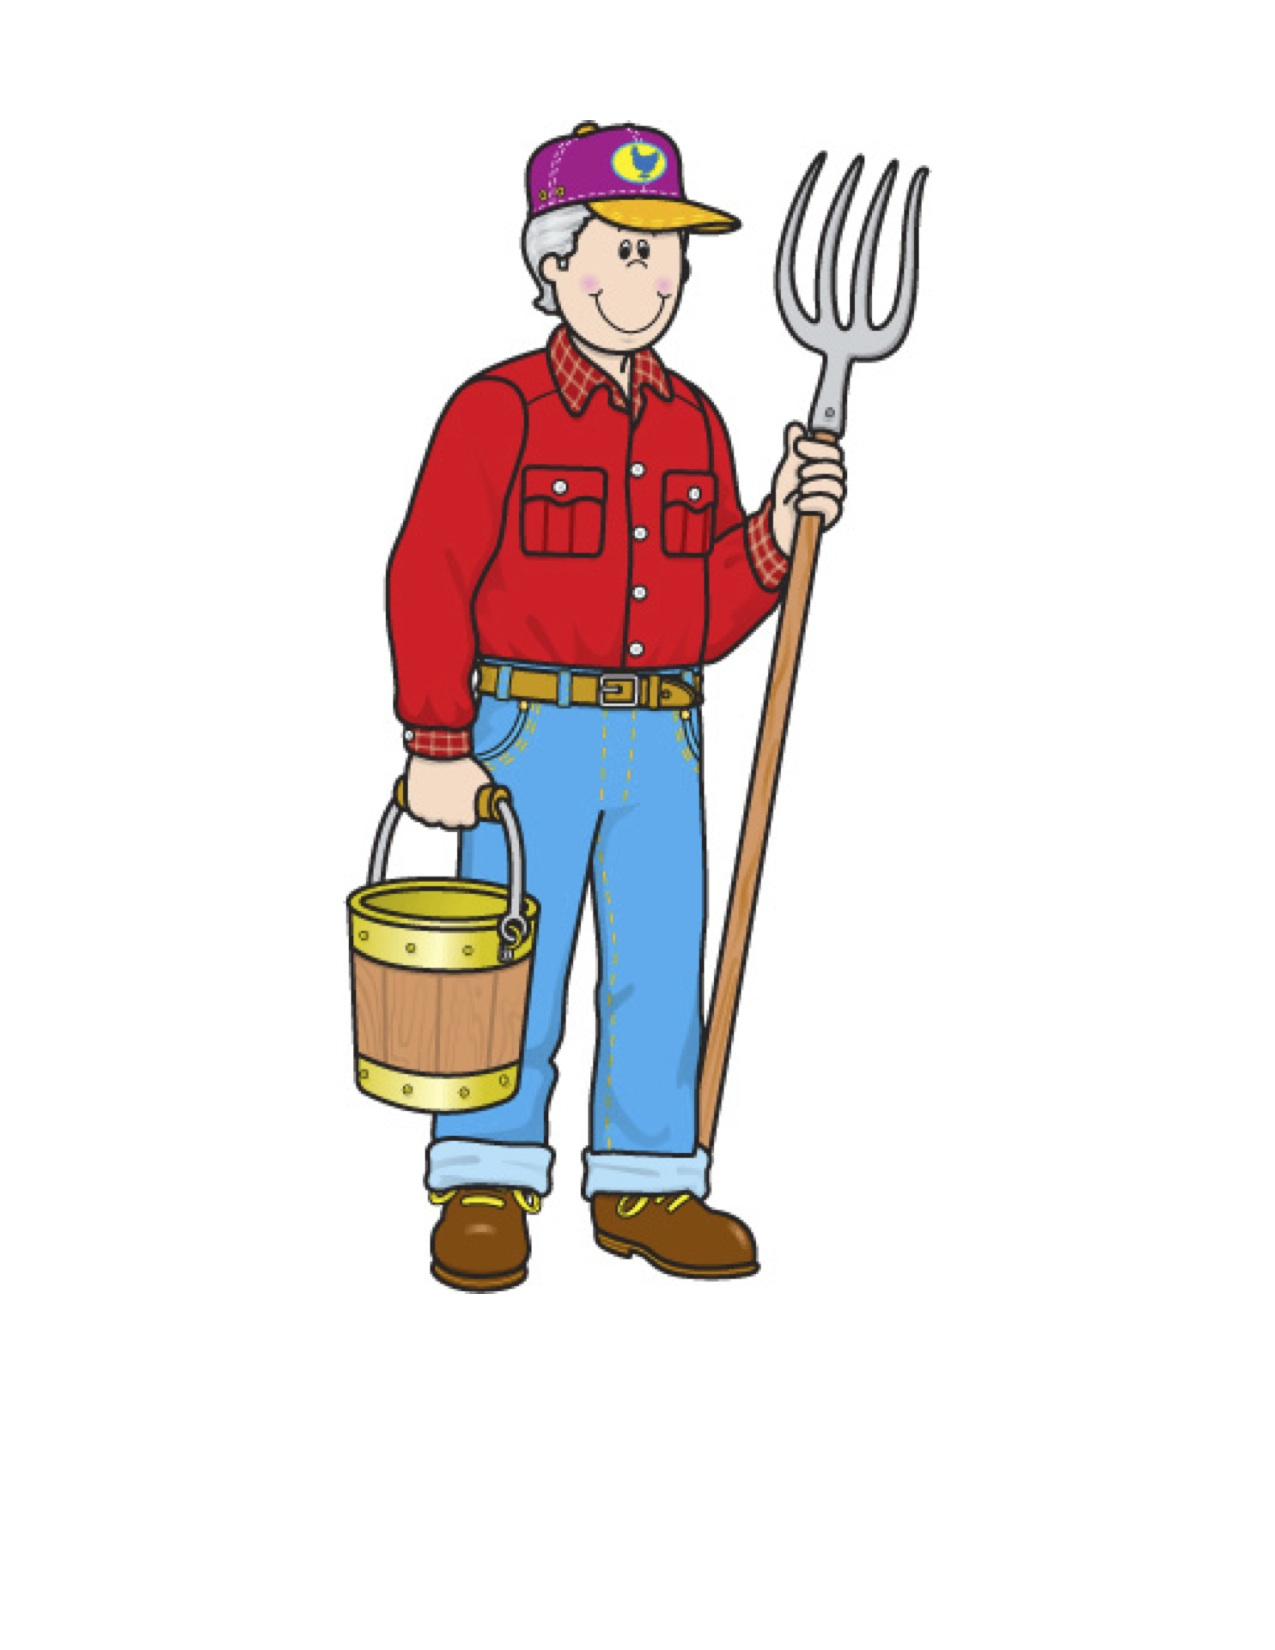 community helpers clipart at getdrawings com free for personal use rh getdrawings com community helpers clip art free community helpers clipart black and white